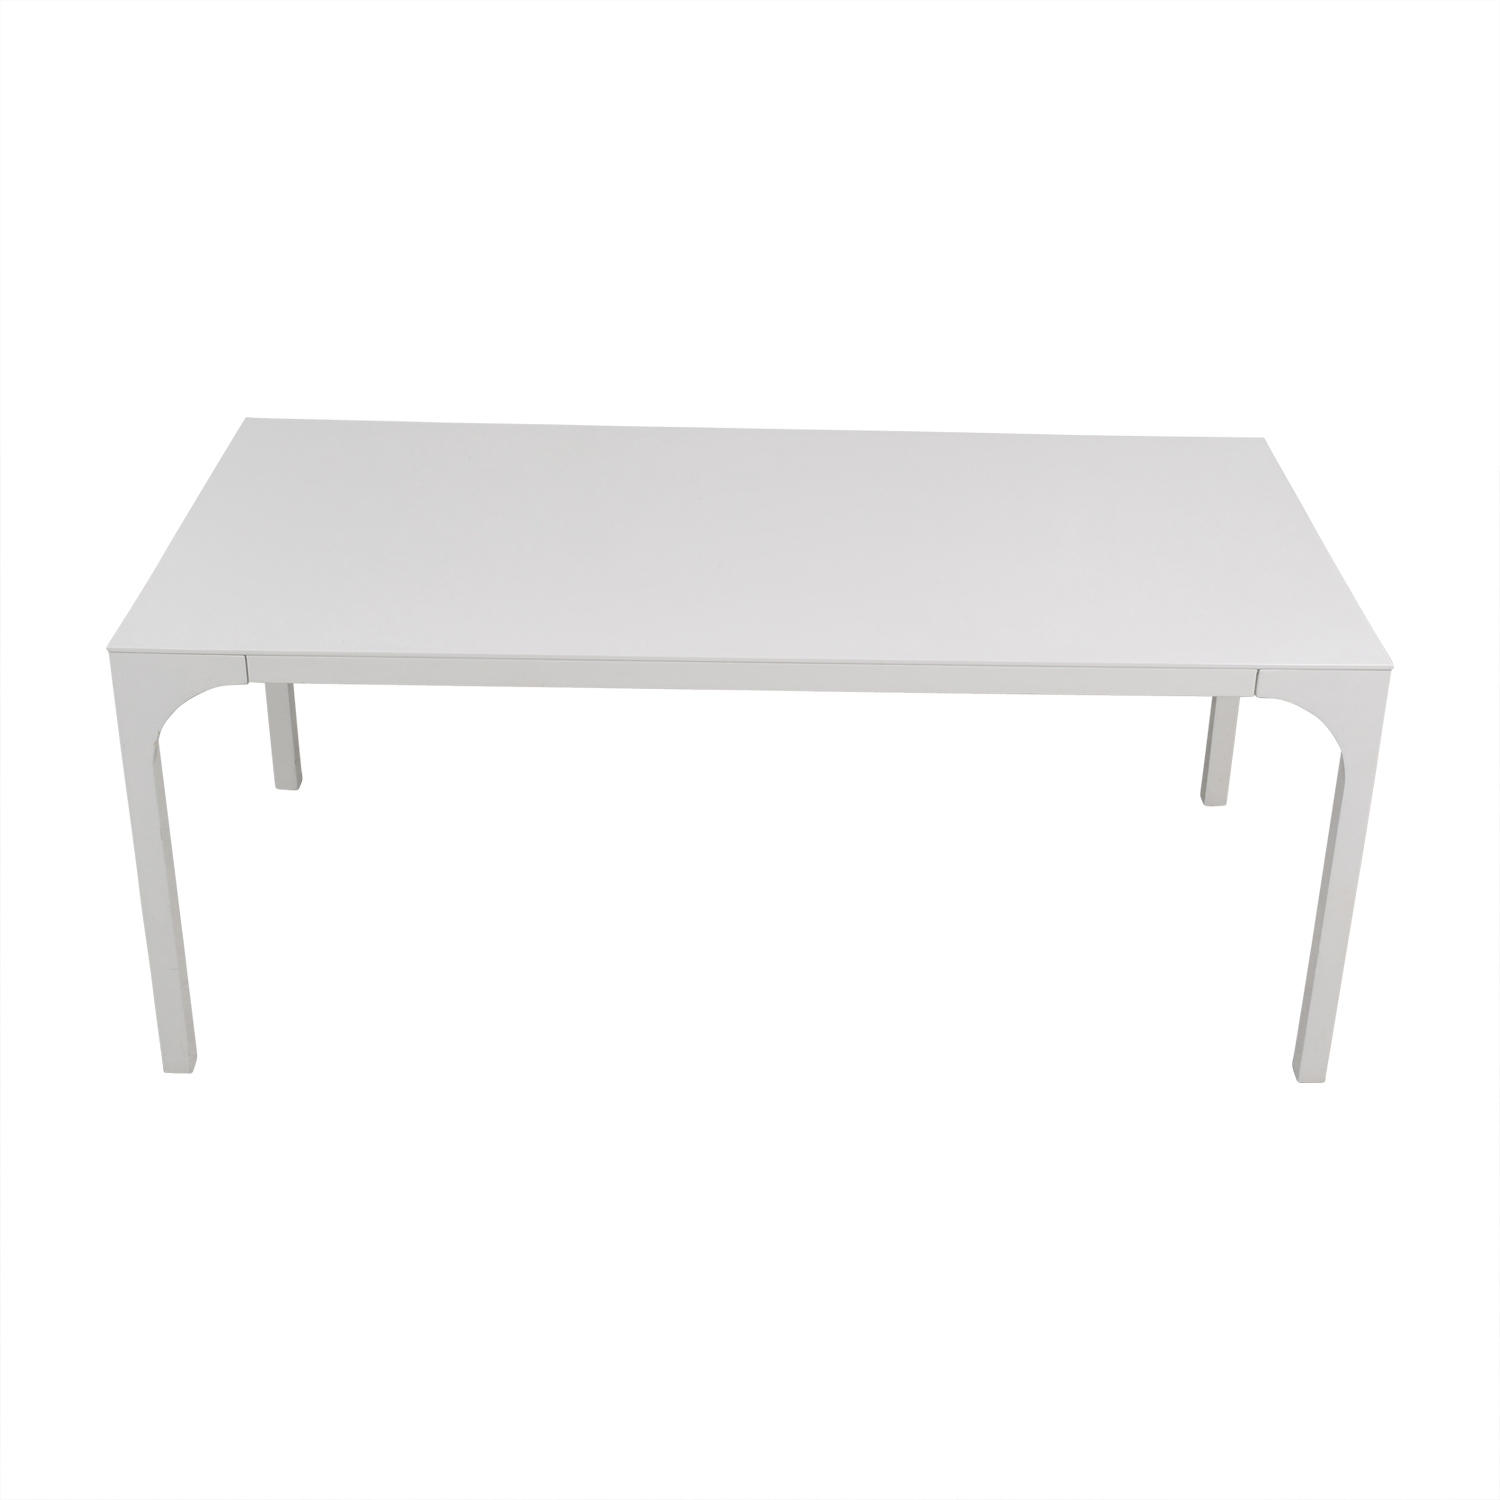 buy White Rectangular Table online